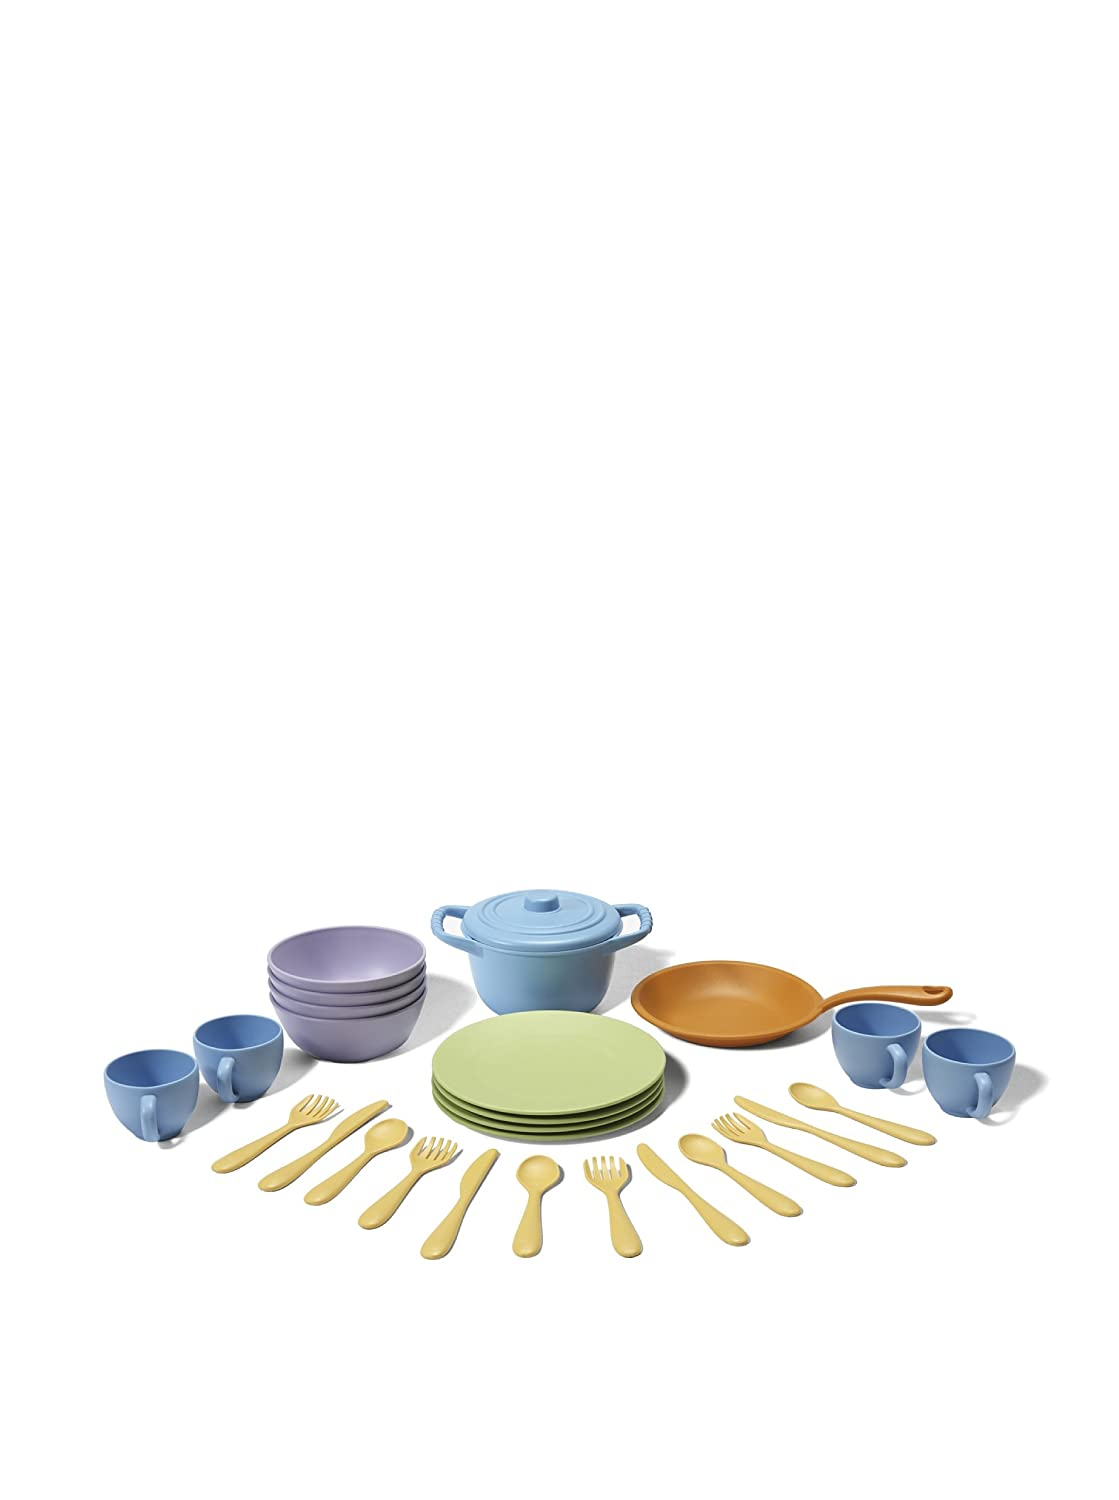 B0015466LM Green Toys, Toy Cookware and Dining Set 71K4RccYiyL